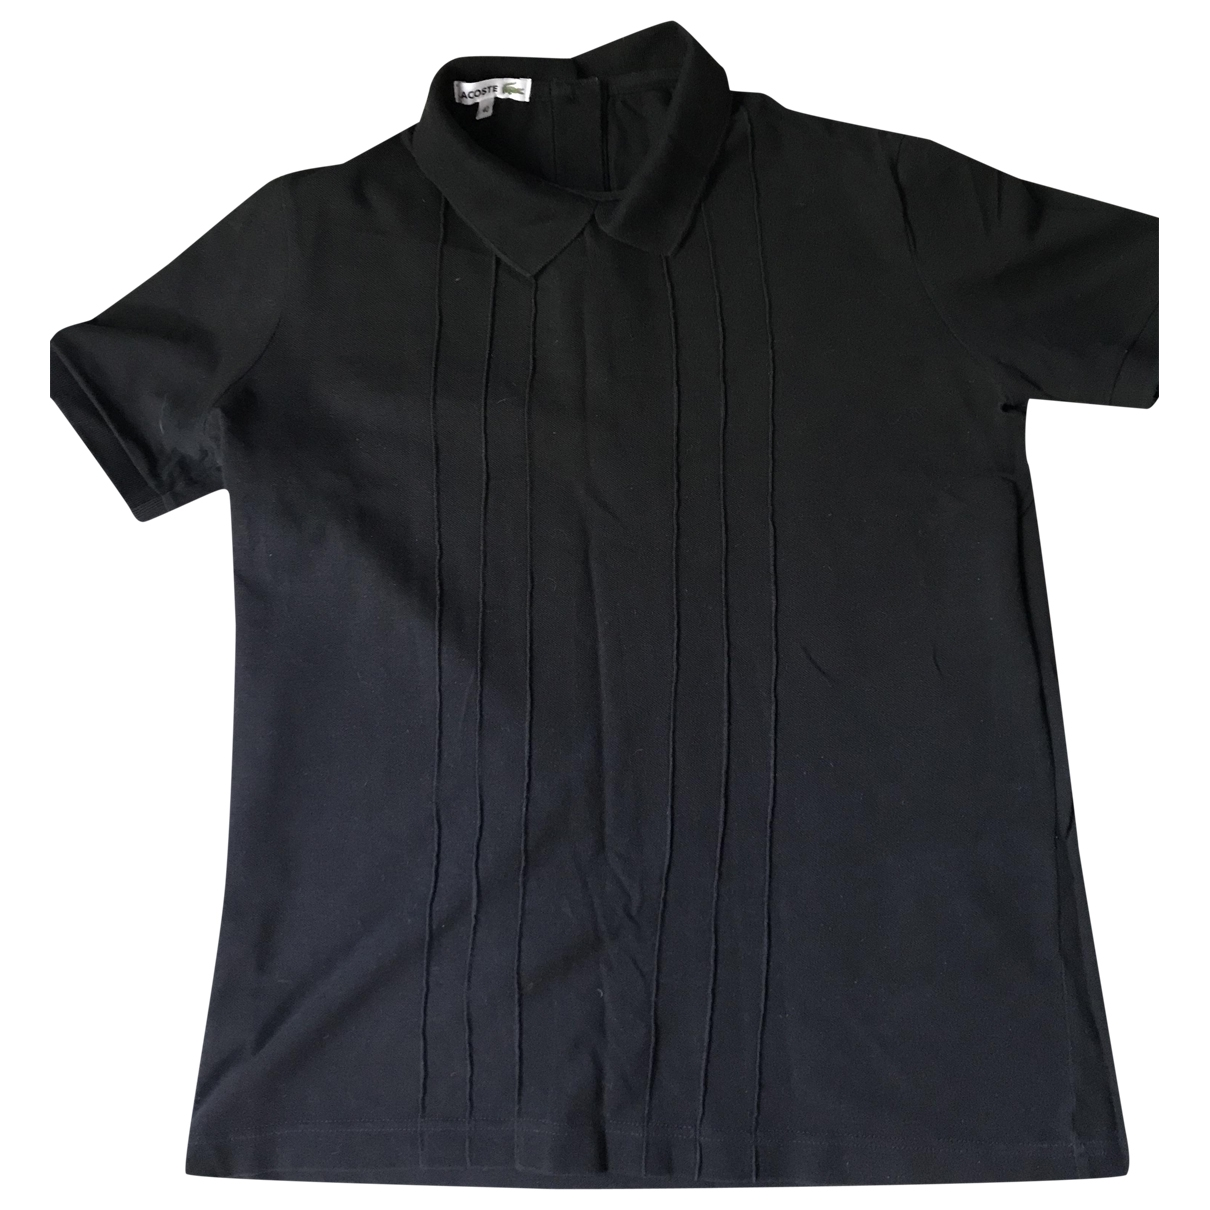 Lacoste \N Black Cotton  top for Women 40 FR